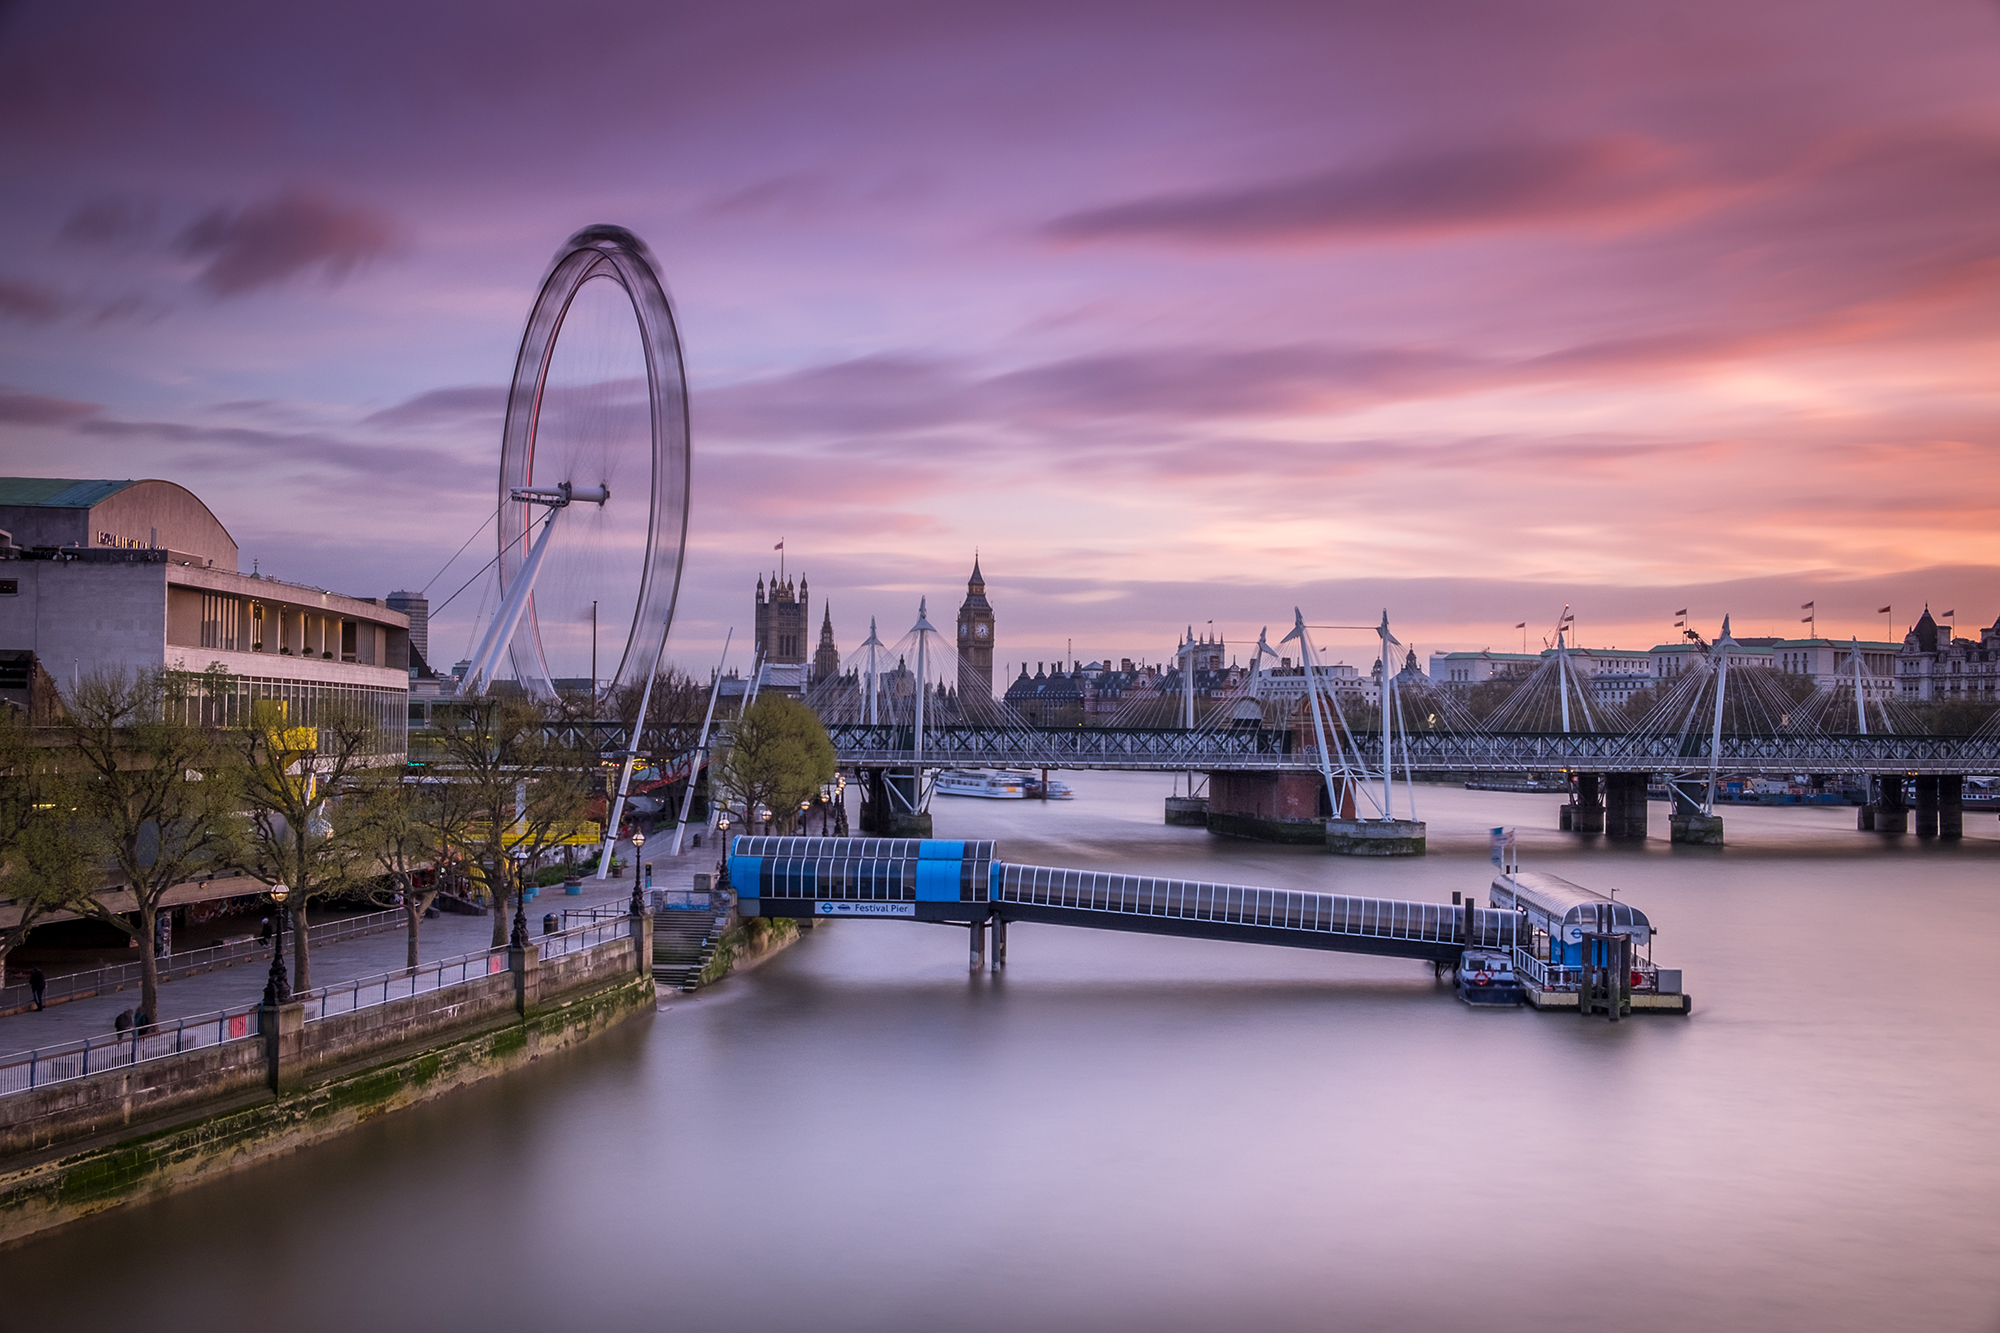 Photo of London Eye and Big Ben at sunset taken by Trevor Sherwin